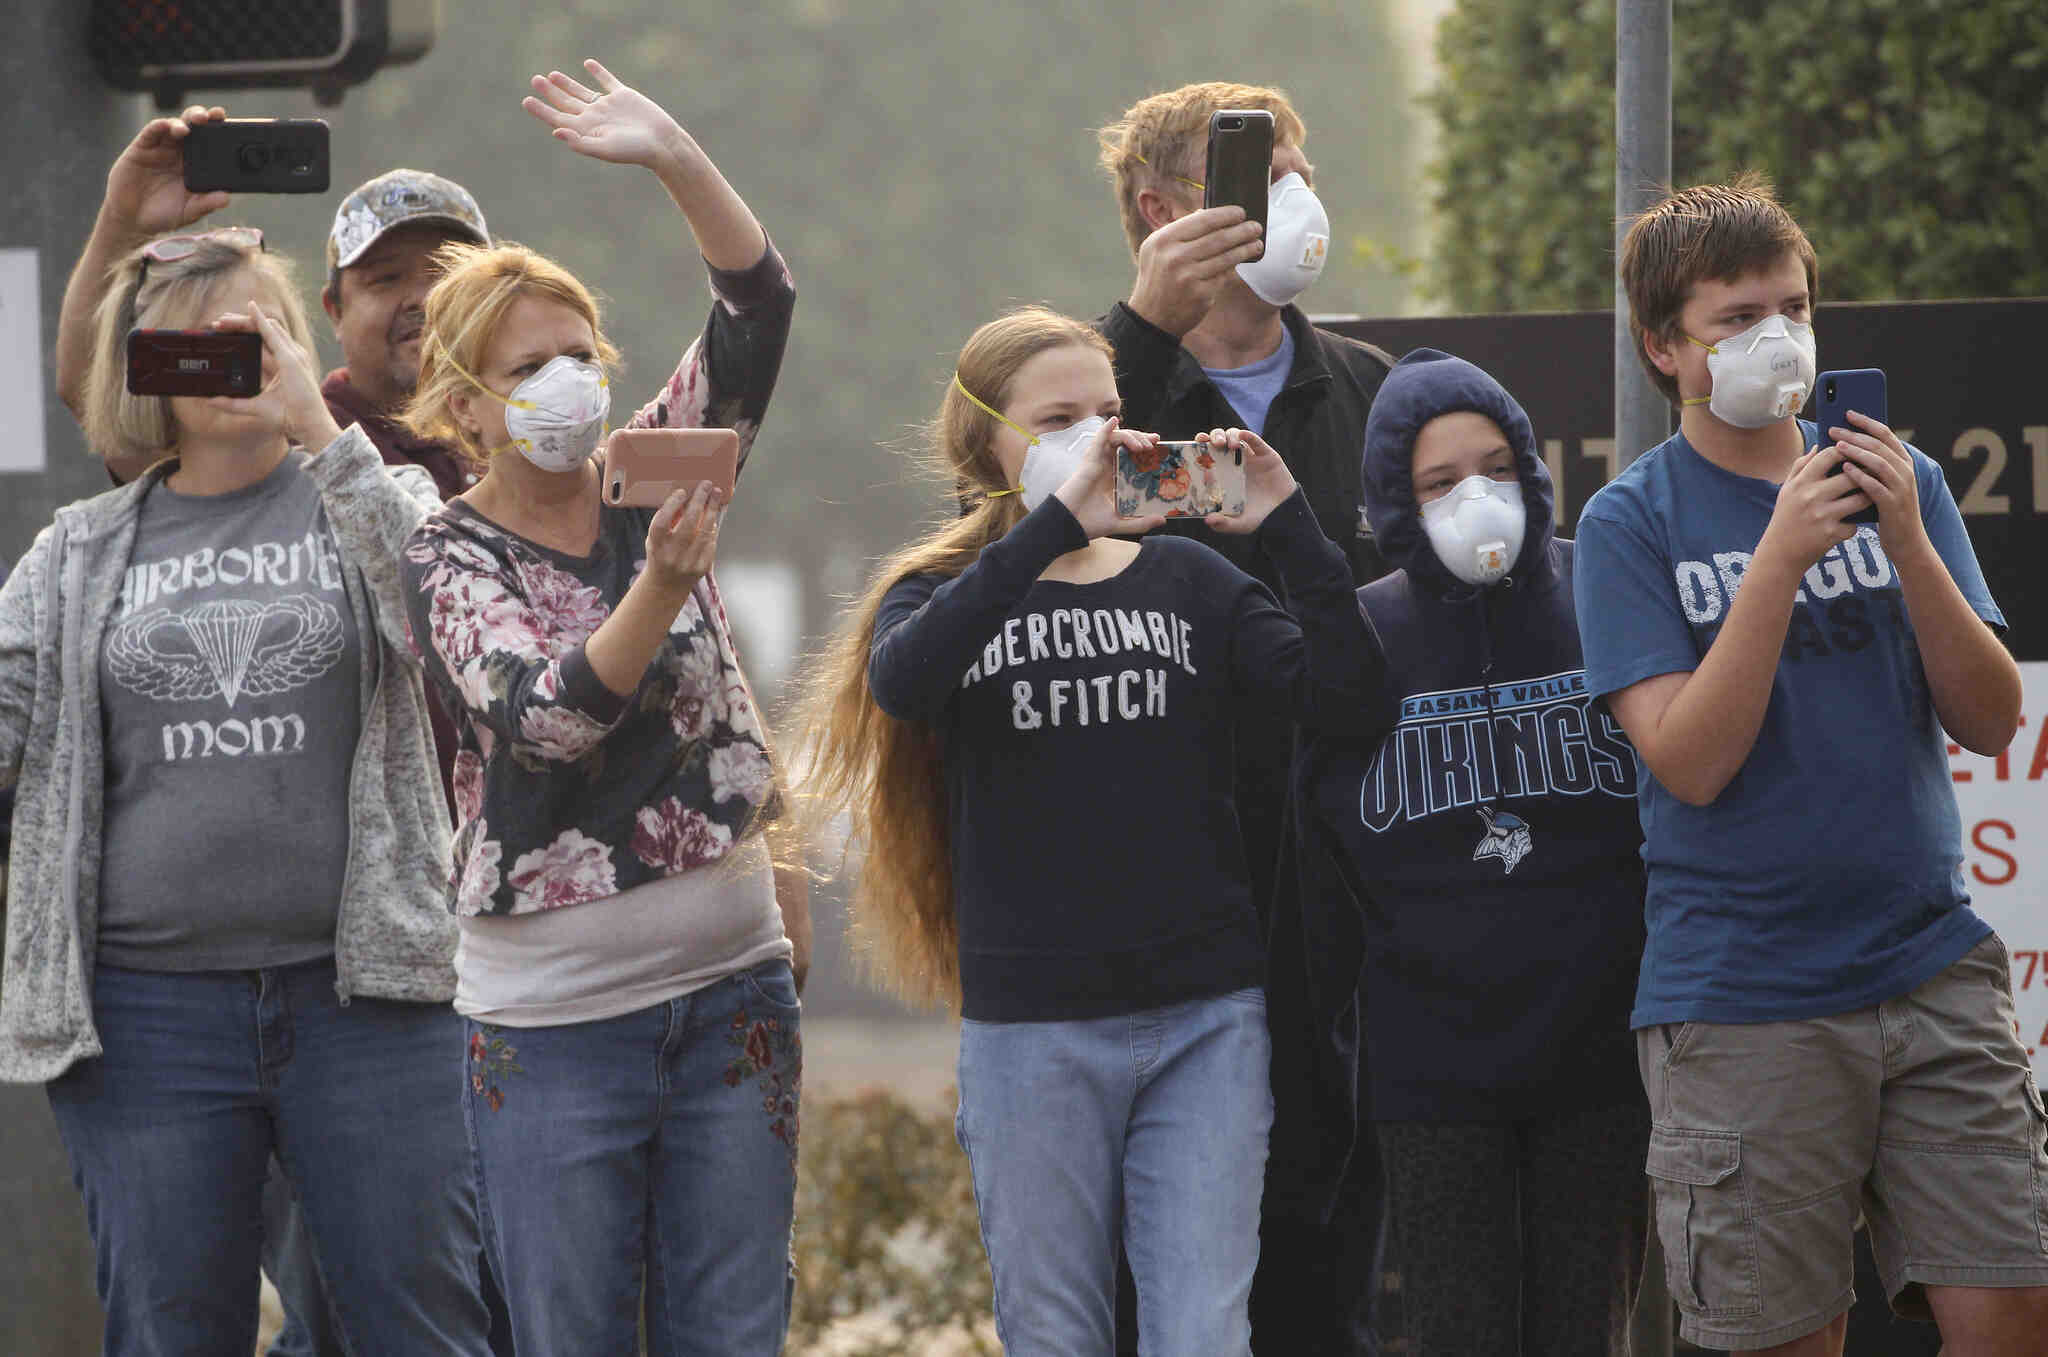 A group of people stand on a street wearing air masks and taking video on their cellphones.